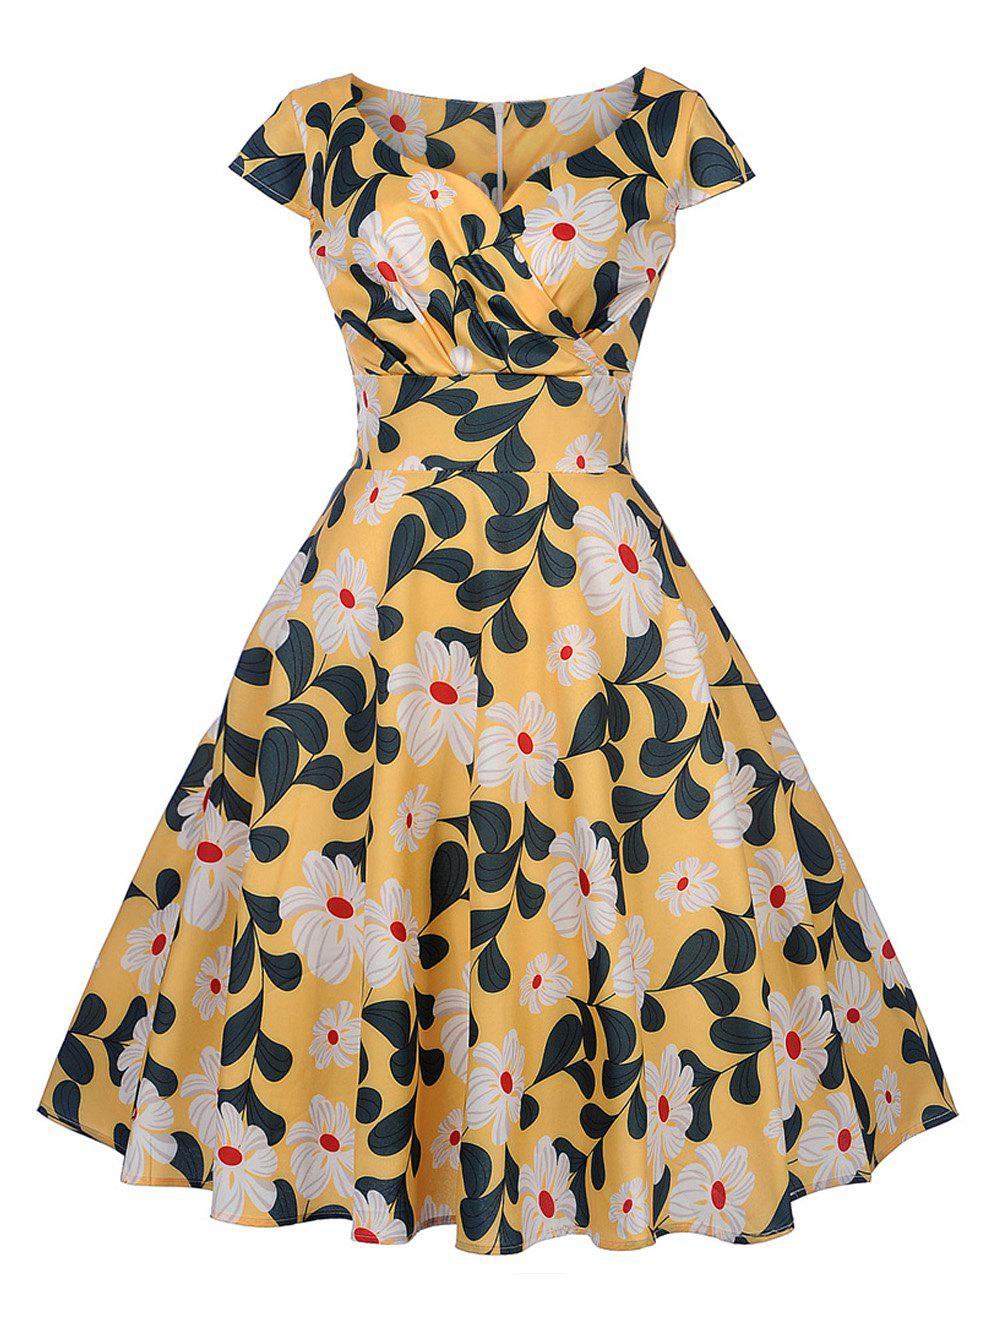 New New Women's Vintage 50s 60s Retro Rockabilly Pinup Housewife Party Swing Dress